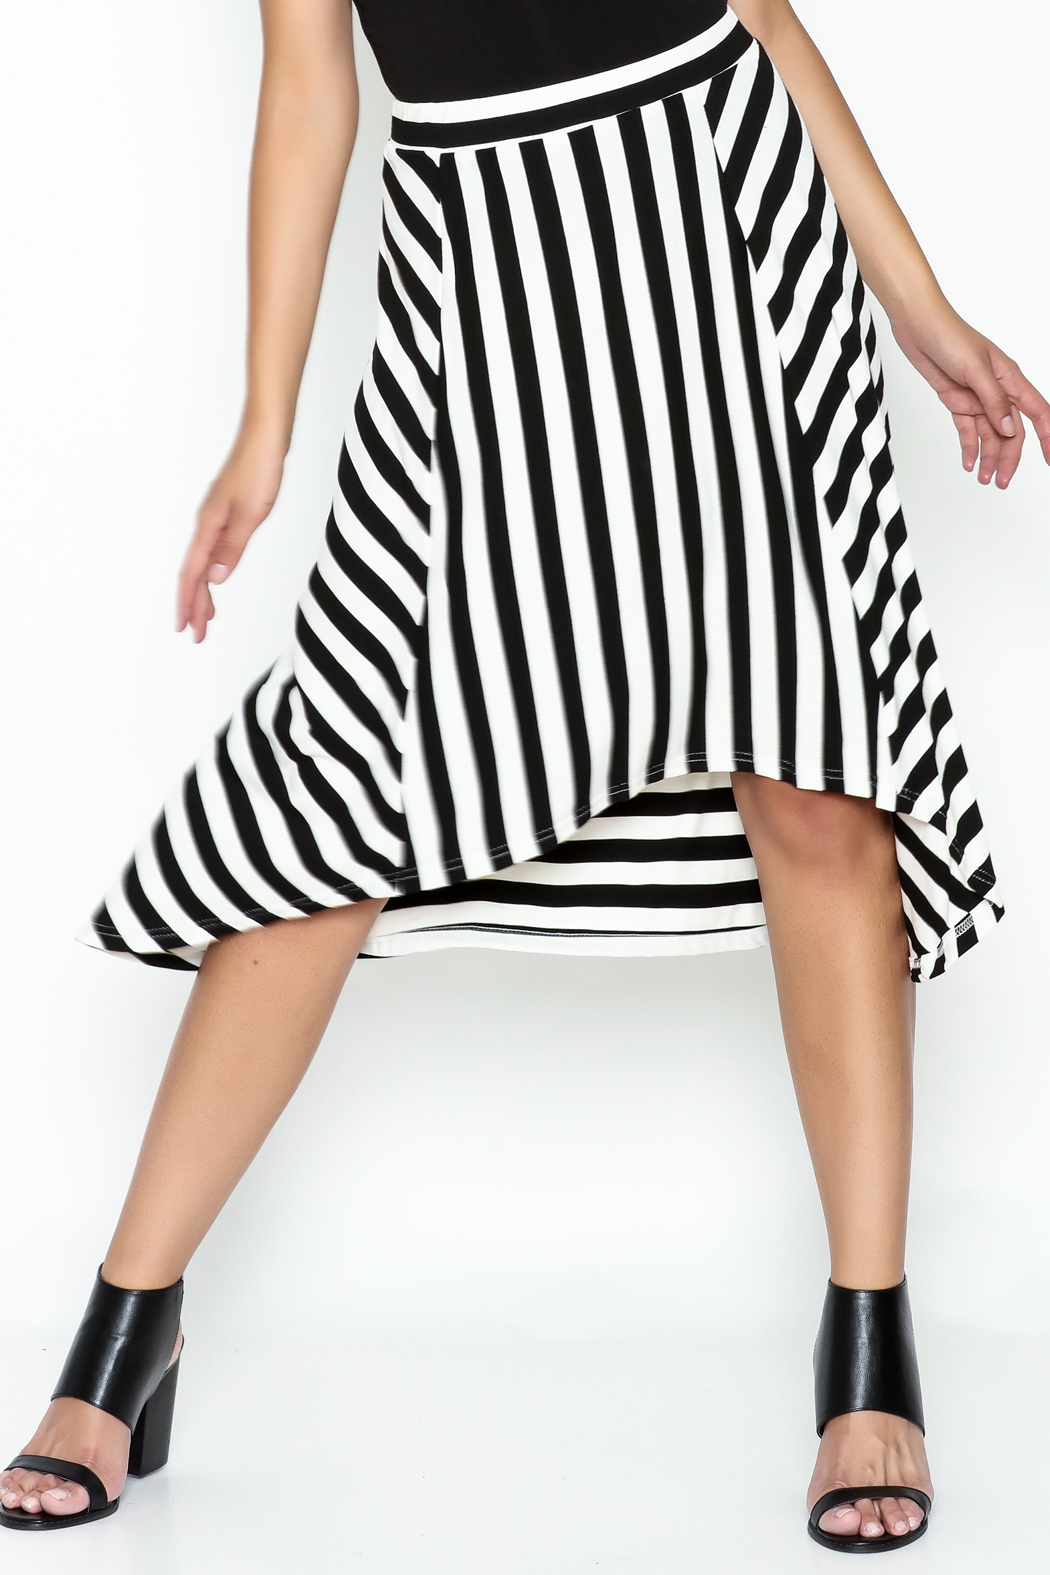 Coco + Carmen Striped Hi Low Skirt - Front Cropped Image